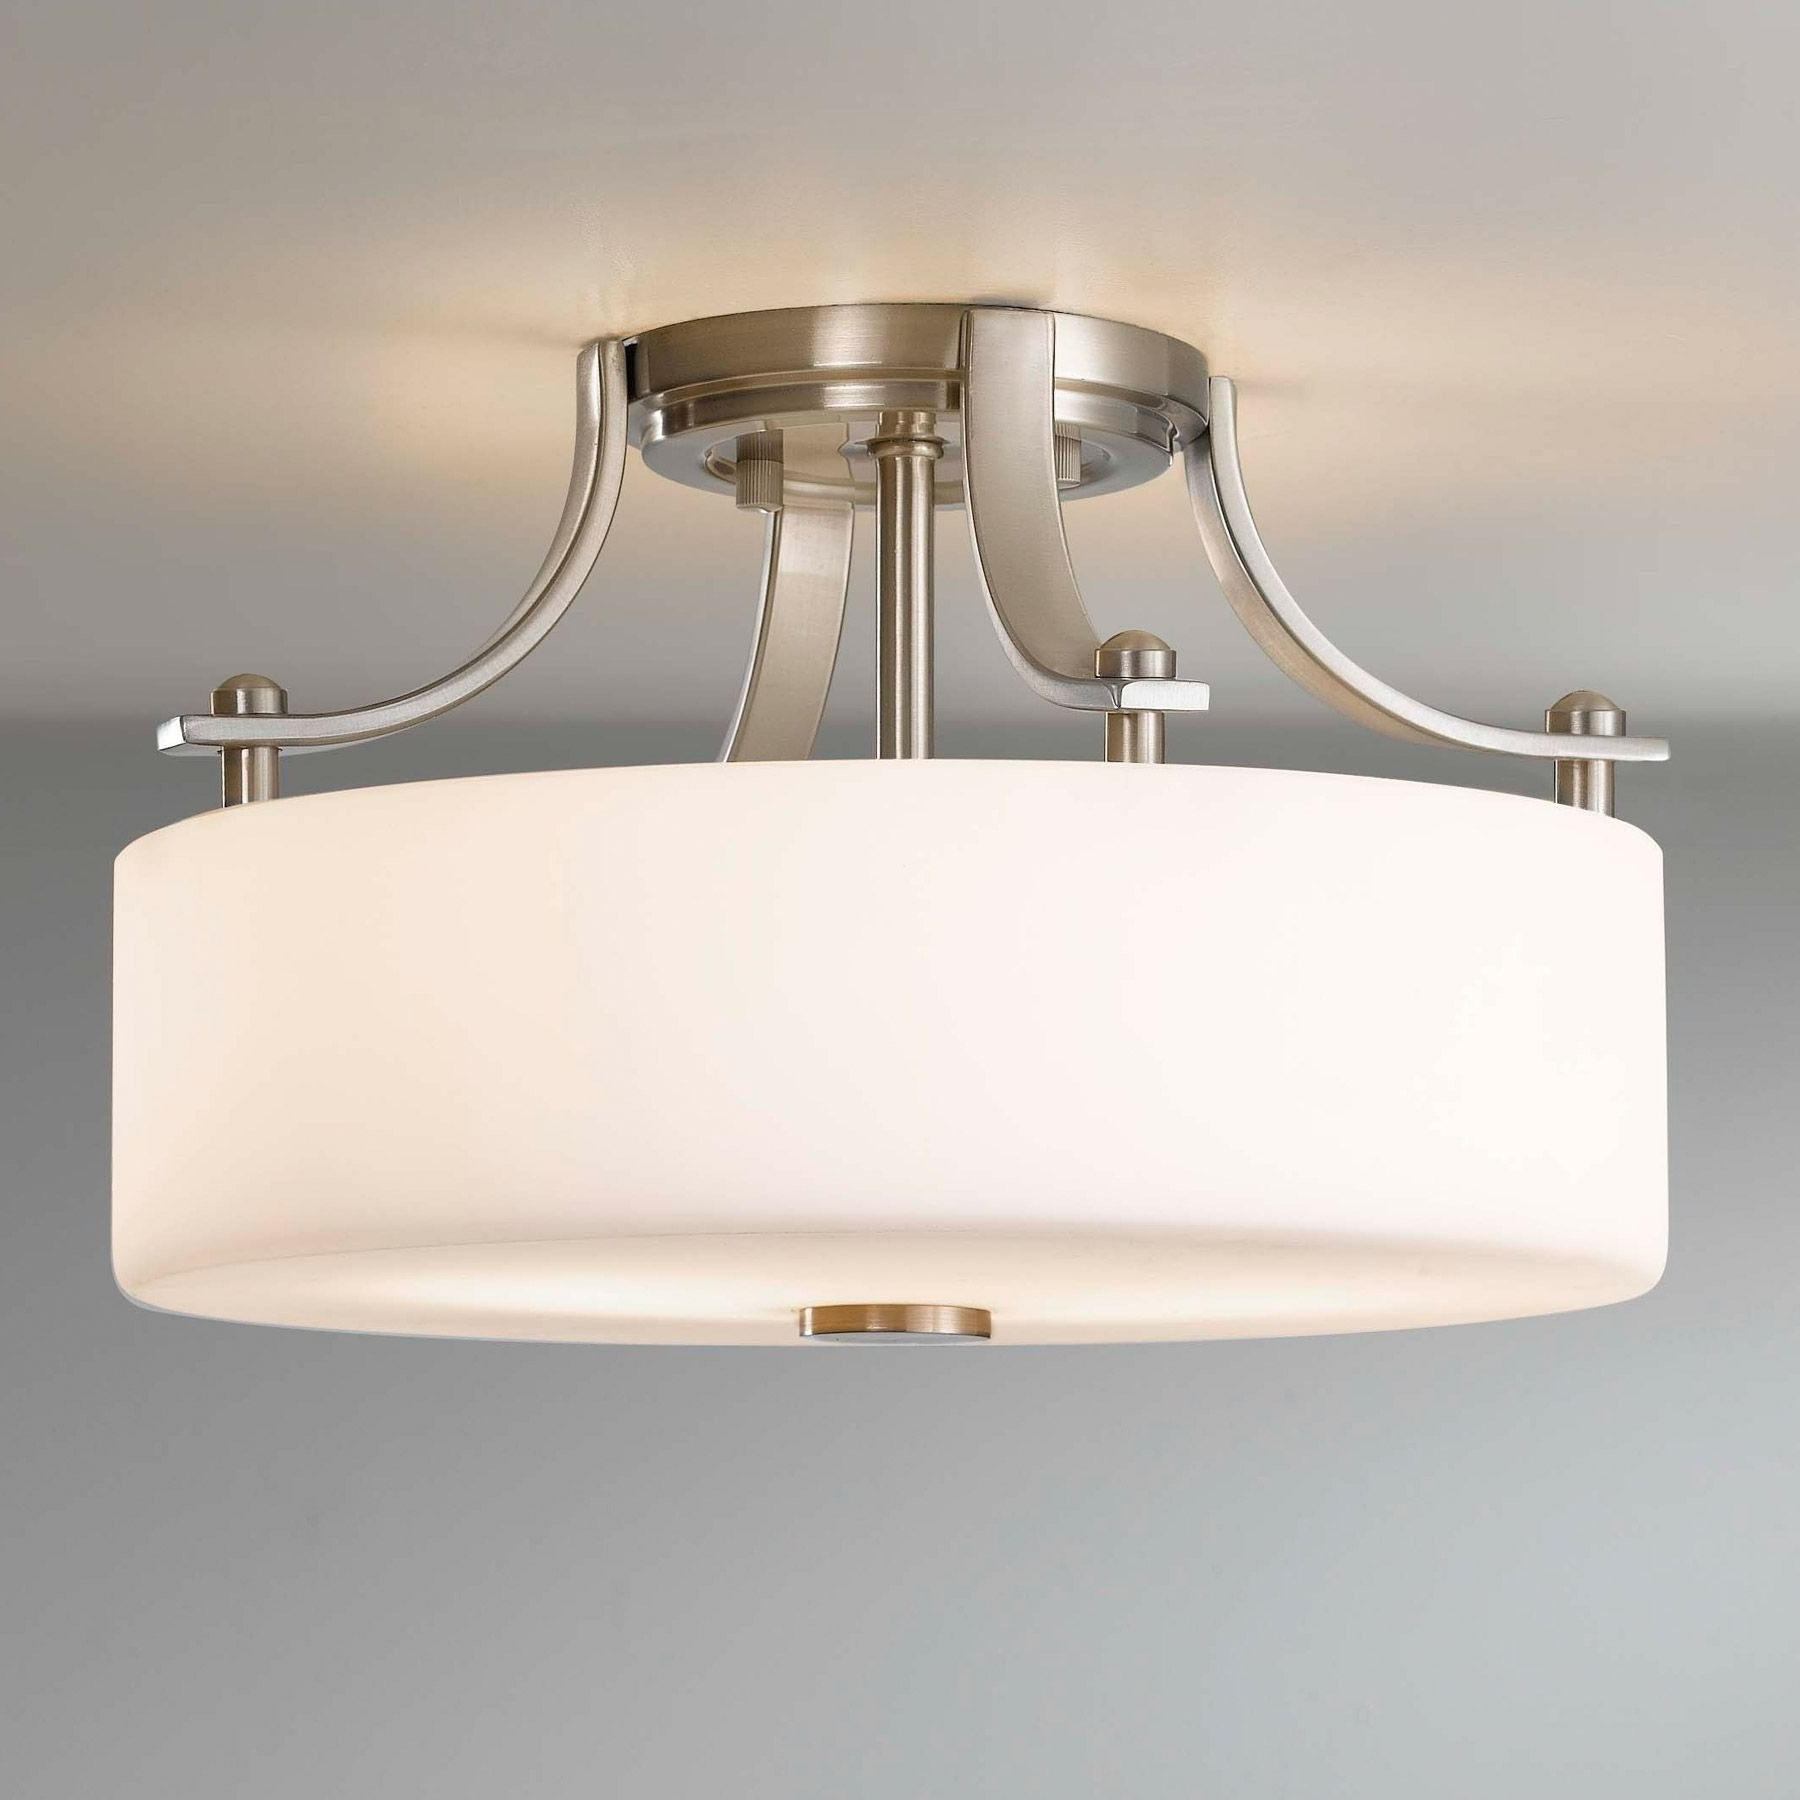 Most Current Chandelier Bathroom Ceiling Lights Intended For Bathroom Ceiling Light Fixture – Inspirational White Flushmount (View 6 of 20)